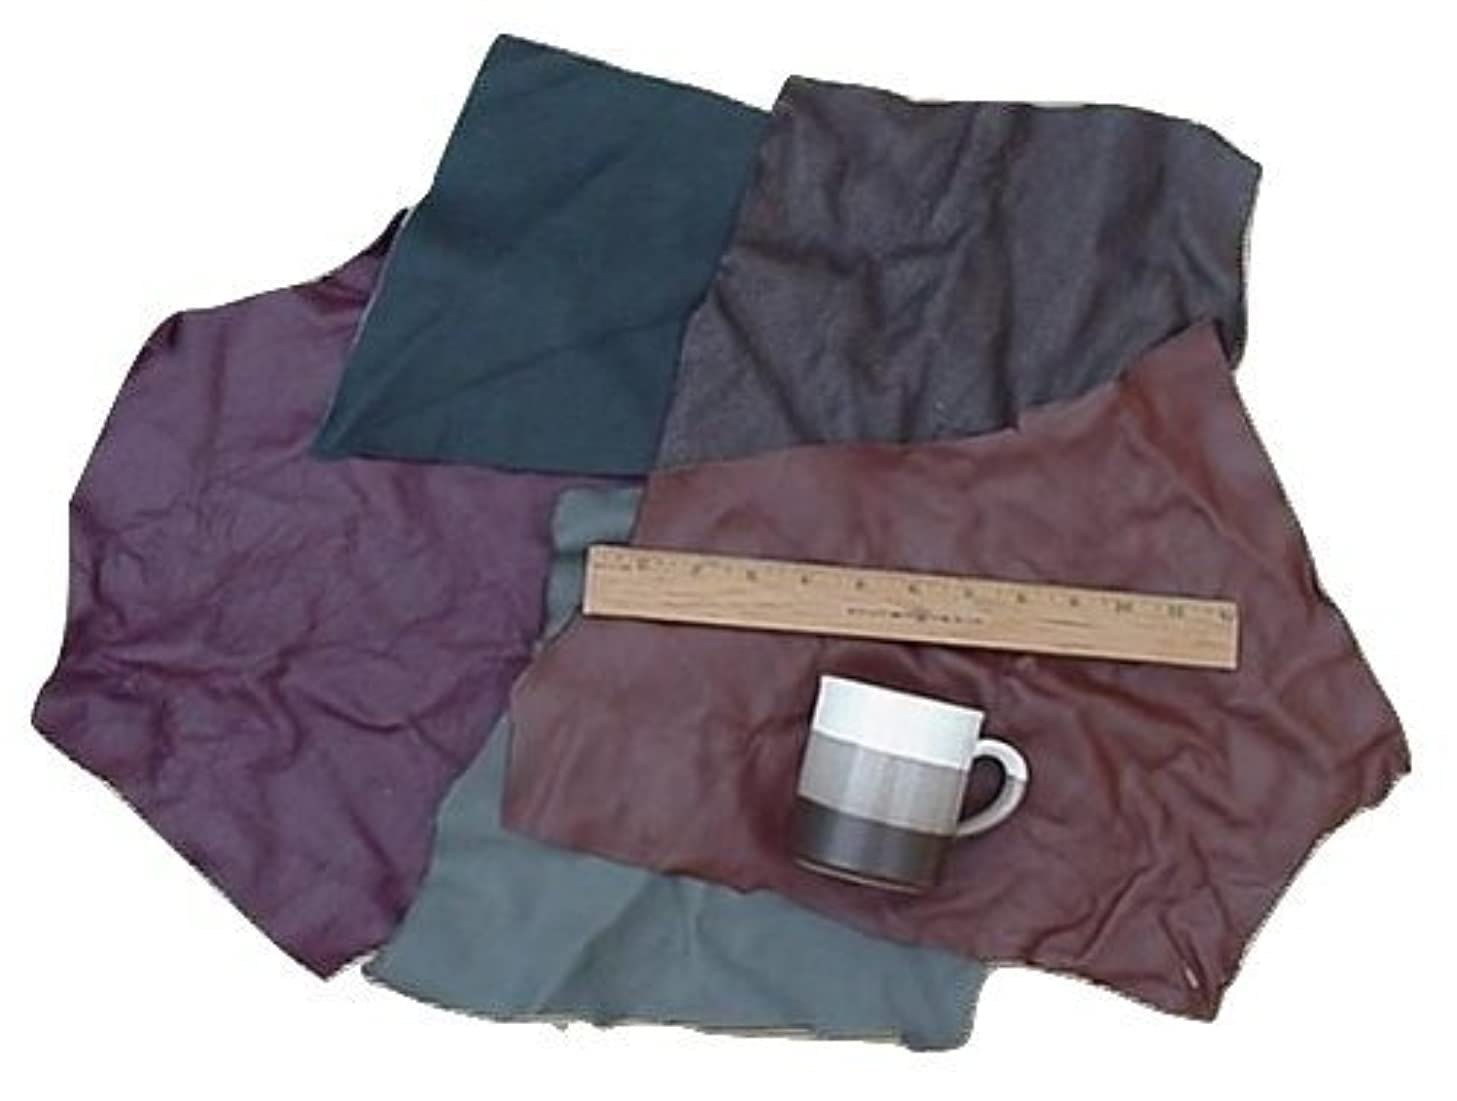 Scrap Upholstery Leather Mixed Large Pieces Light Weight 6 Square Feet